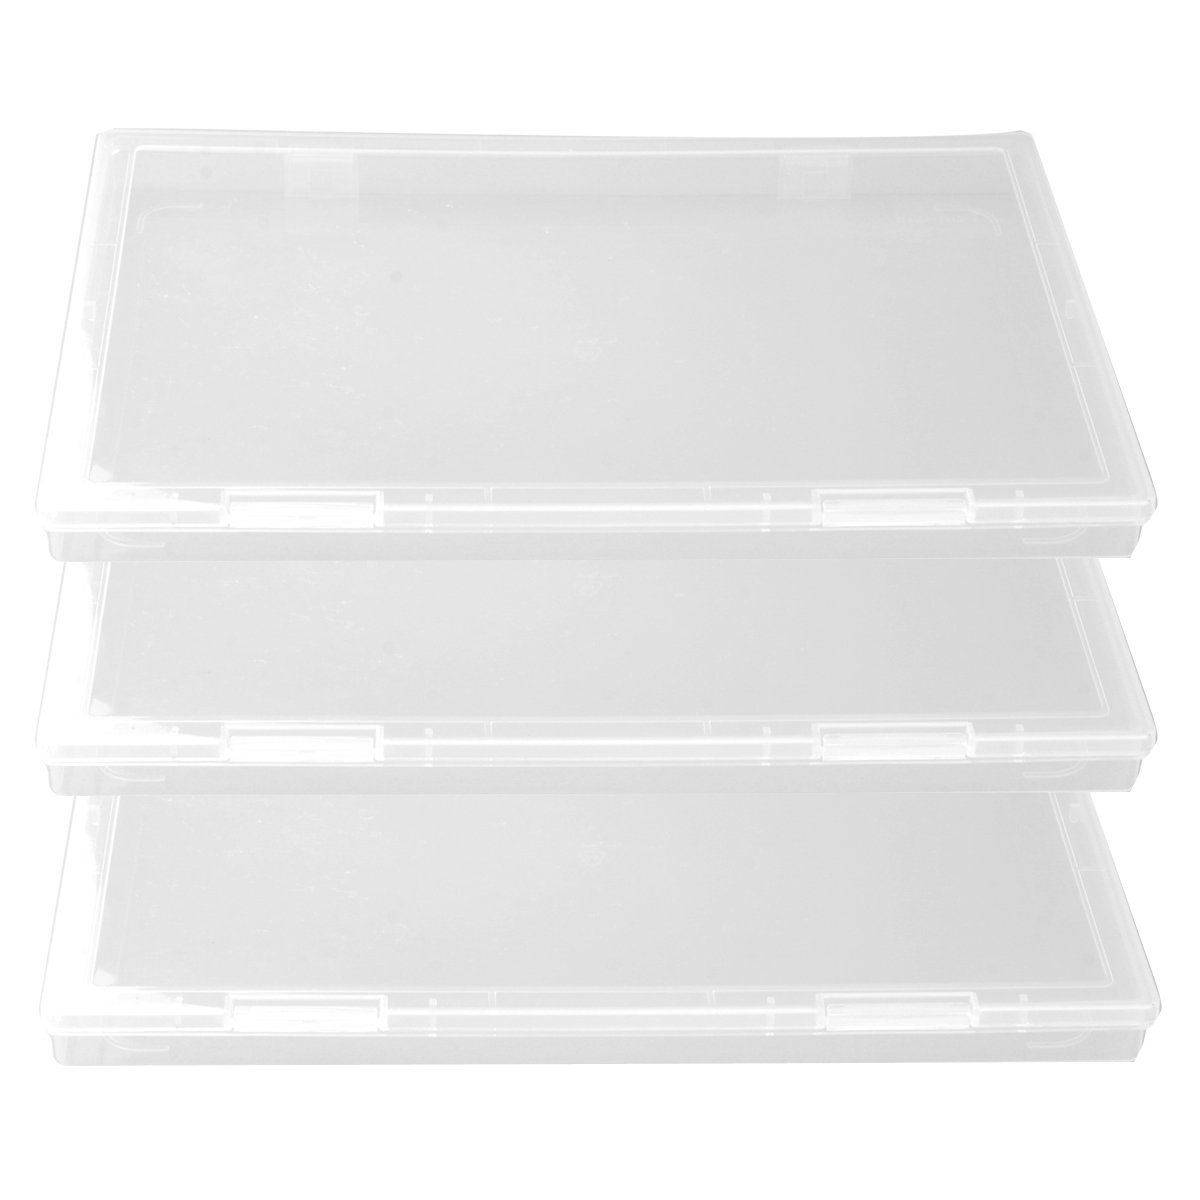 Attrayant Tinksky A4 Clear Plastic Paper File Box Document Storage Box Case Organizer    3 Pcs/